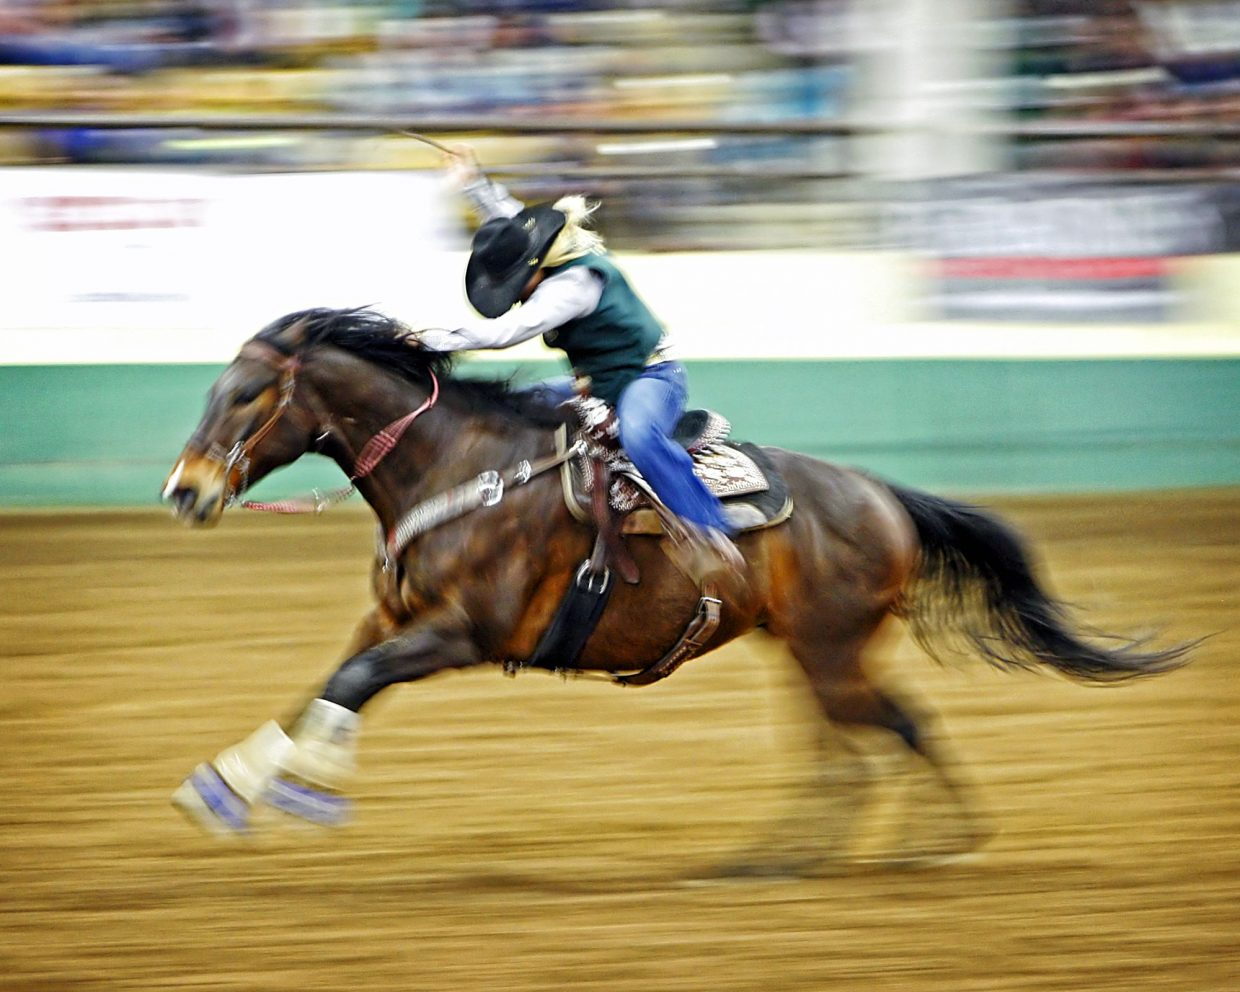 Colorado State University barrel racer, Lake Mehalic, Tucson, Ariz., sprinted for the timers aboard 12-year-old Big Brown on her way to a 14.76-second run on Saturday night. The time was good enough to send Mehalic into Sunday's short go, where she won the round and the average title at the CSU rodeo.